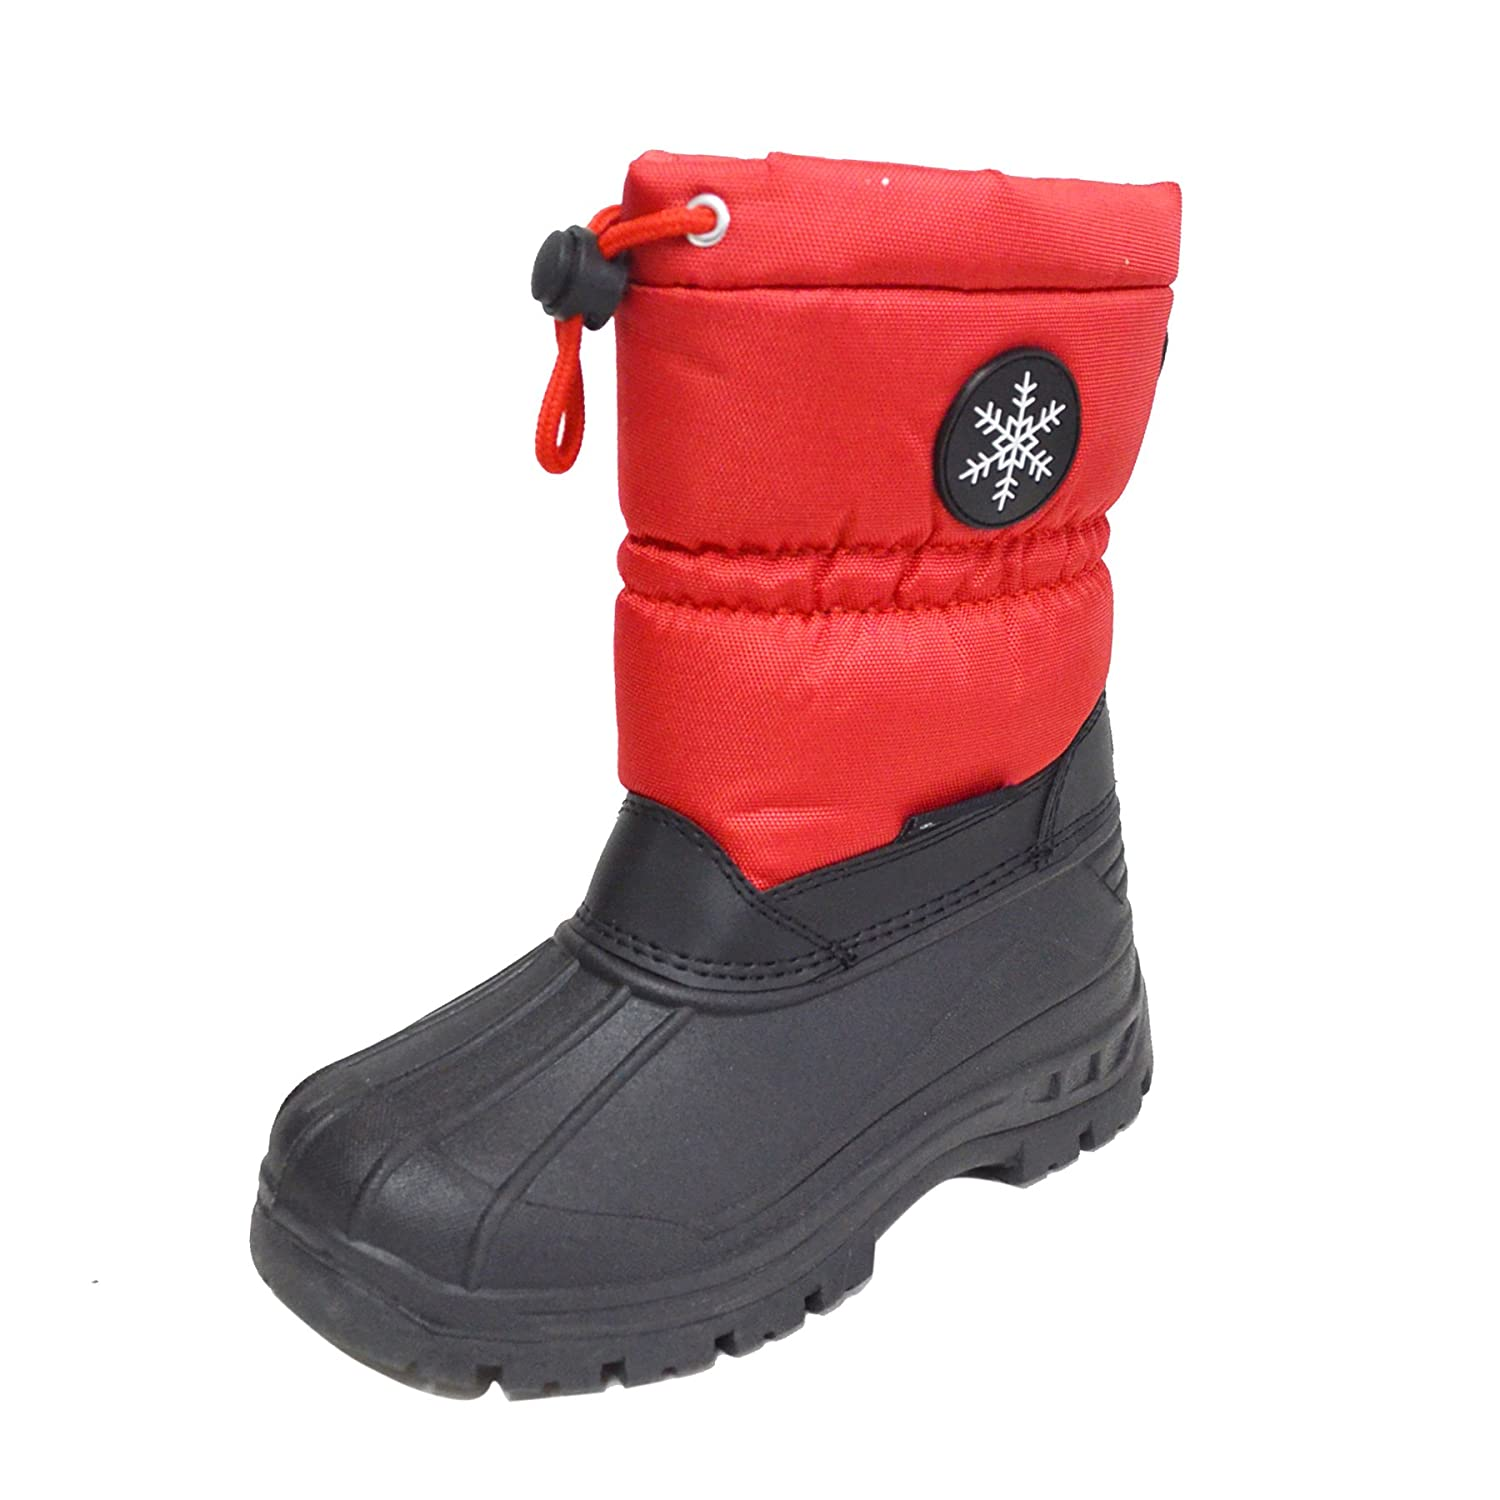 BABY03 Happy Bull Kids Big Boys Girls Winter Snow Boots Water Resistant Insulated Boots